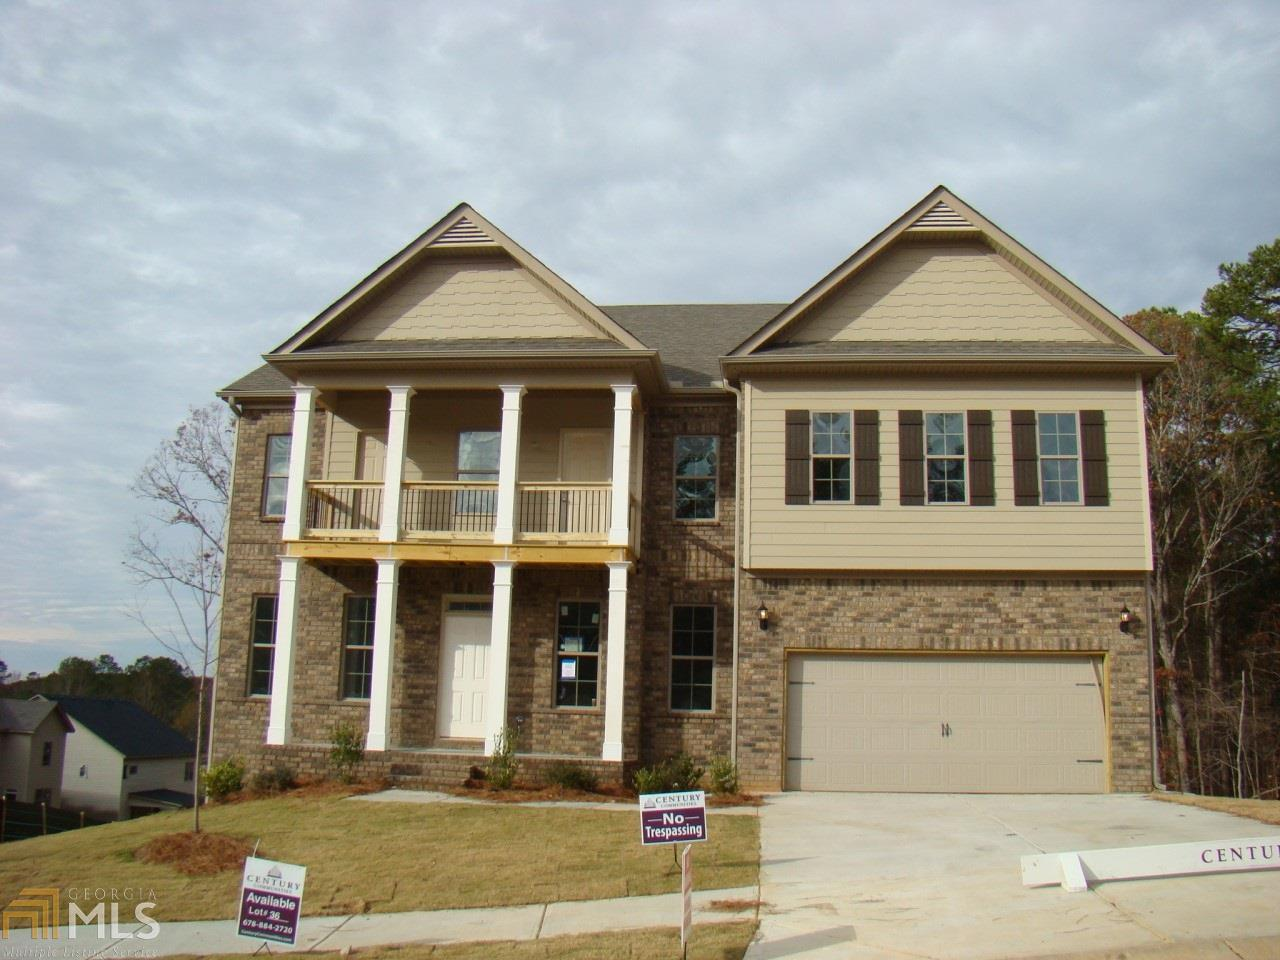 holly springs single parents 135 single family homes for sale in holly springs ga view pictures of homes, review sales history, and use our detailed filters to find the perfect place.